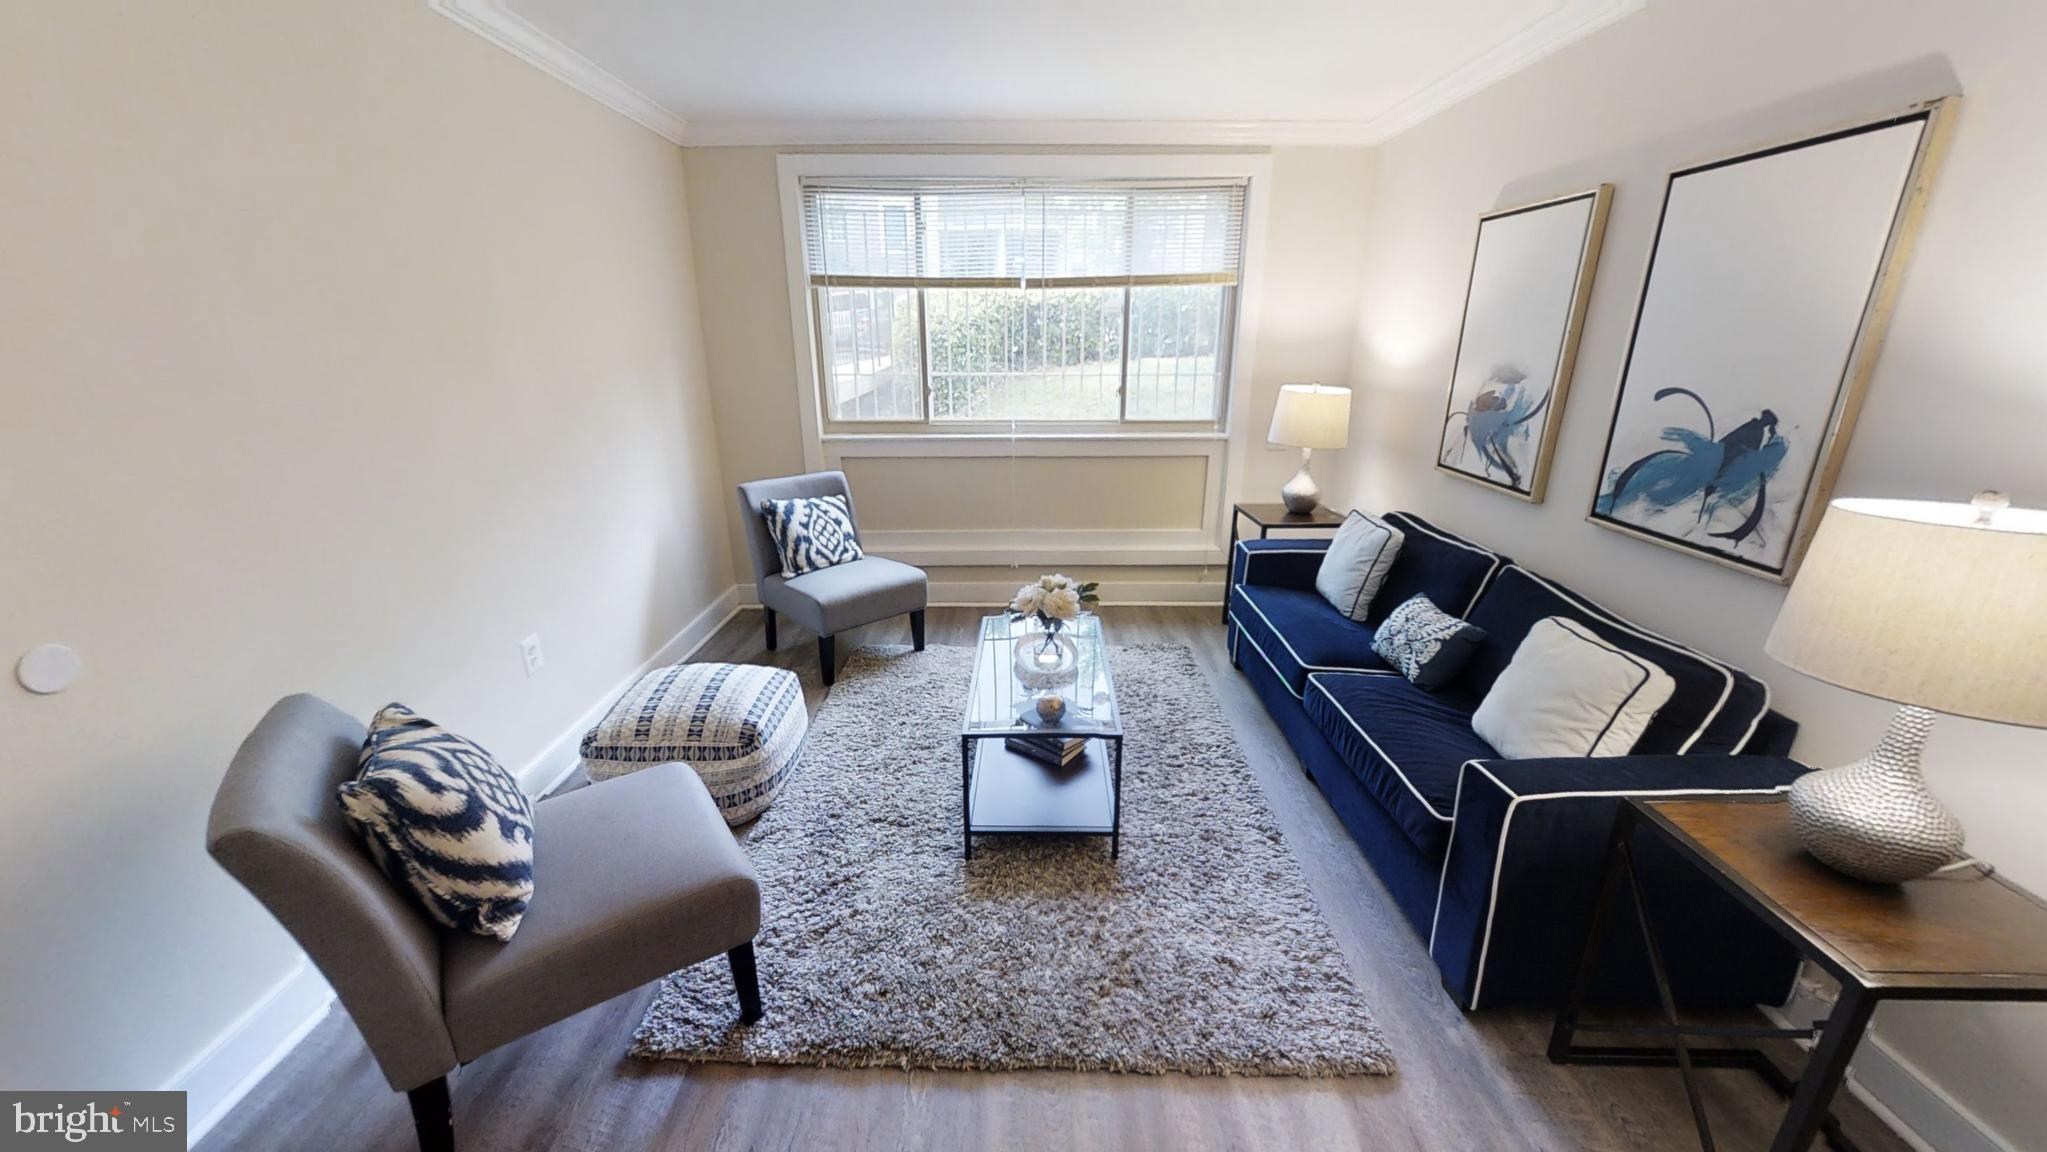 Newly renovated 2 Bed 1 bath condo. A prime location , perfect for commuters, for easy access to dow